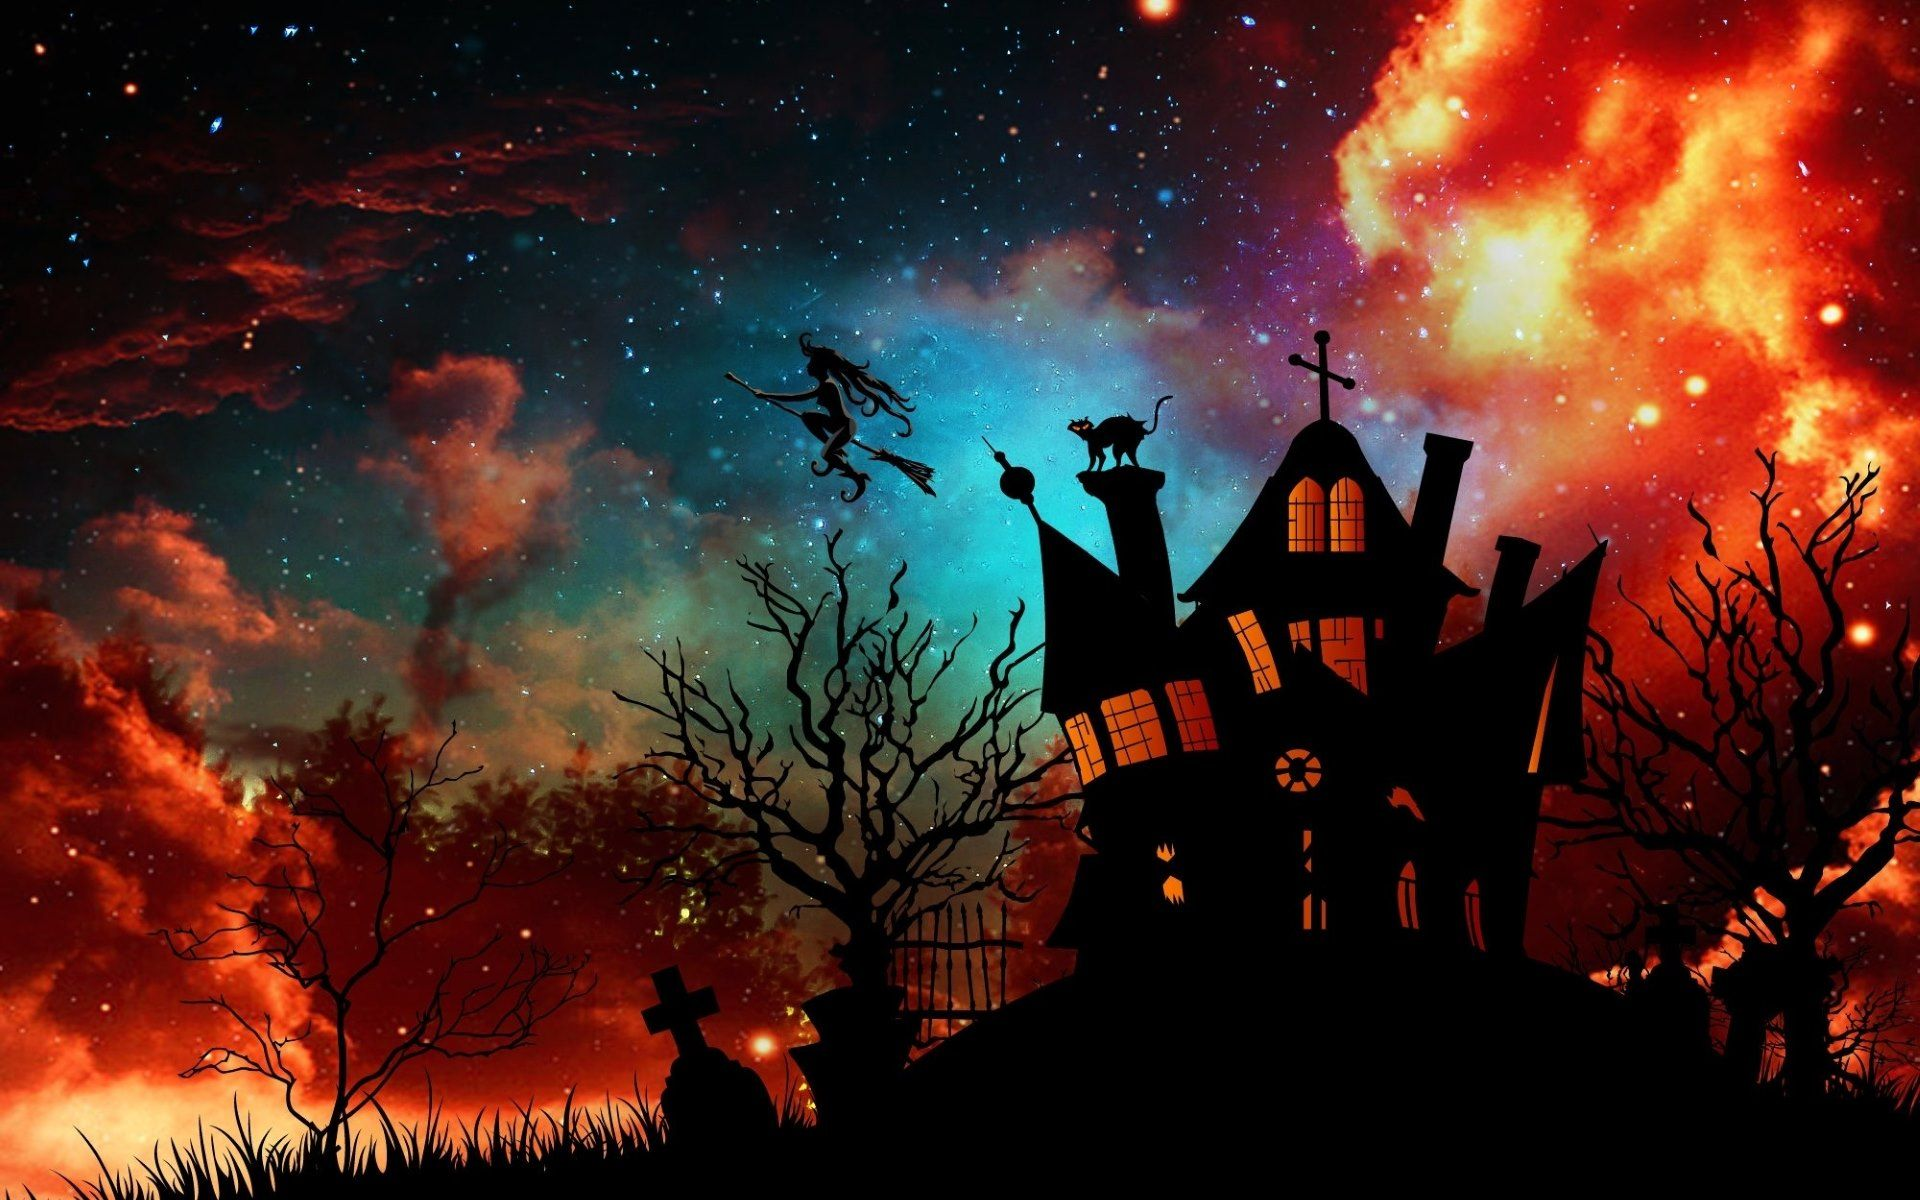 halloween wallpapers widescreen wtih hd desktop background wallpaper     halloween wallpapers widescreen wtih hd desktop background wallpaper on 3d    abstract category similar with 3d background bergerak for android free  download